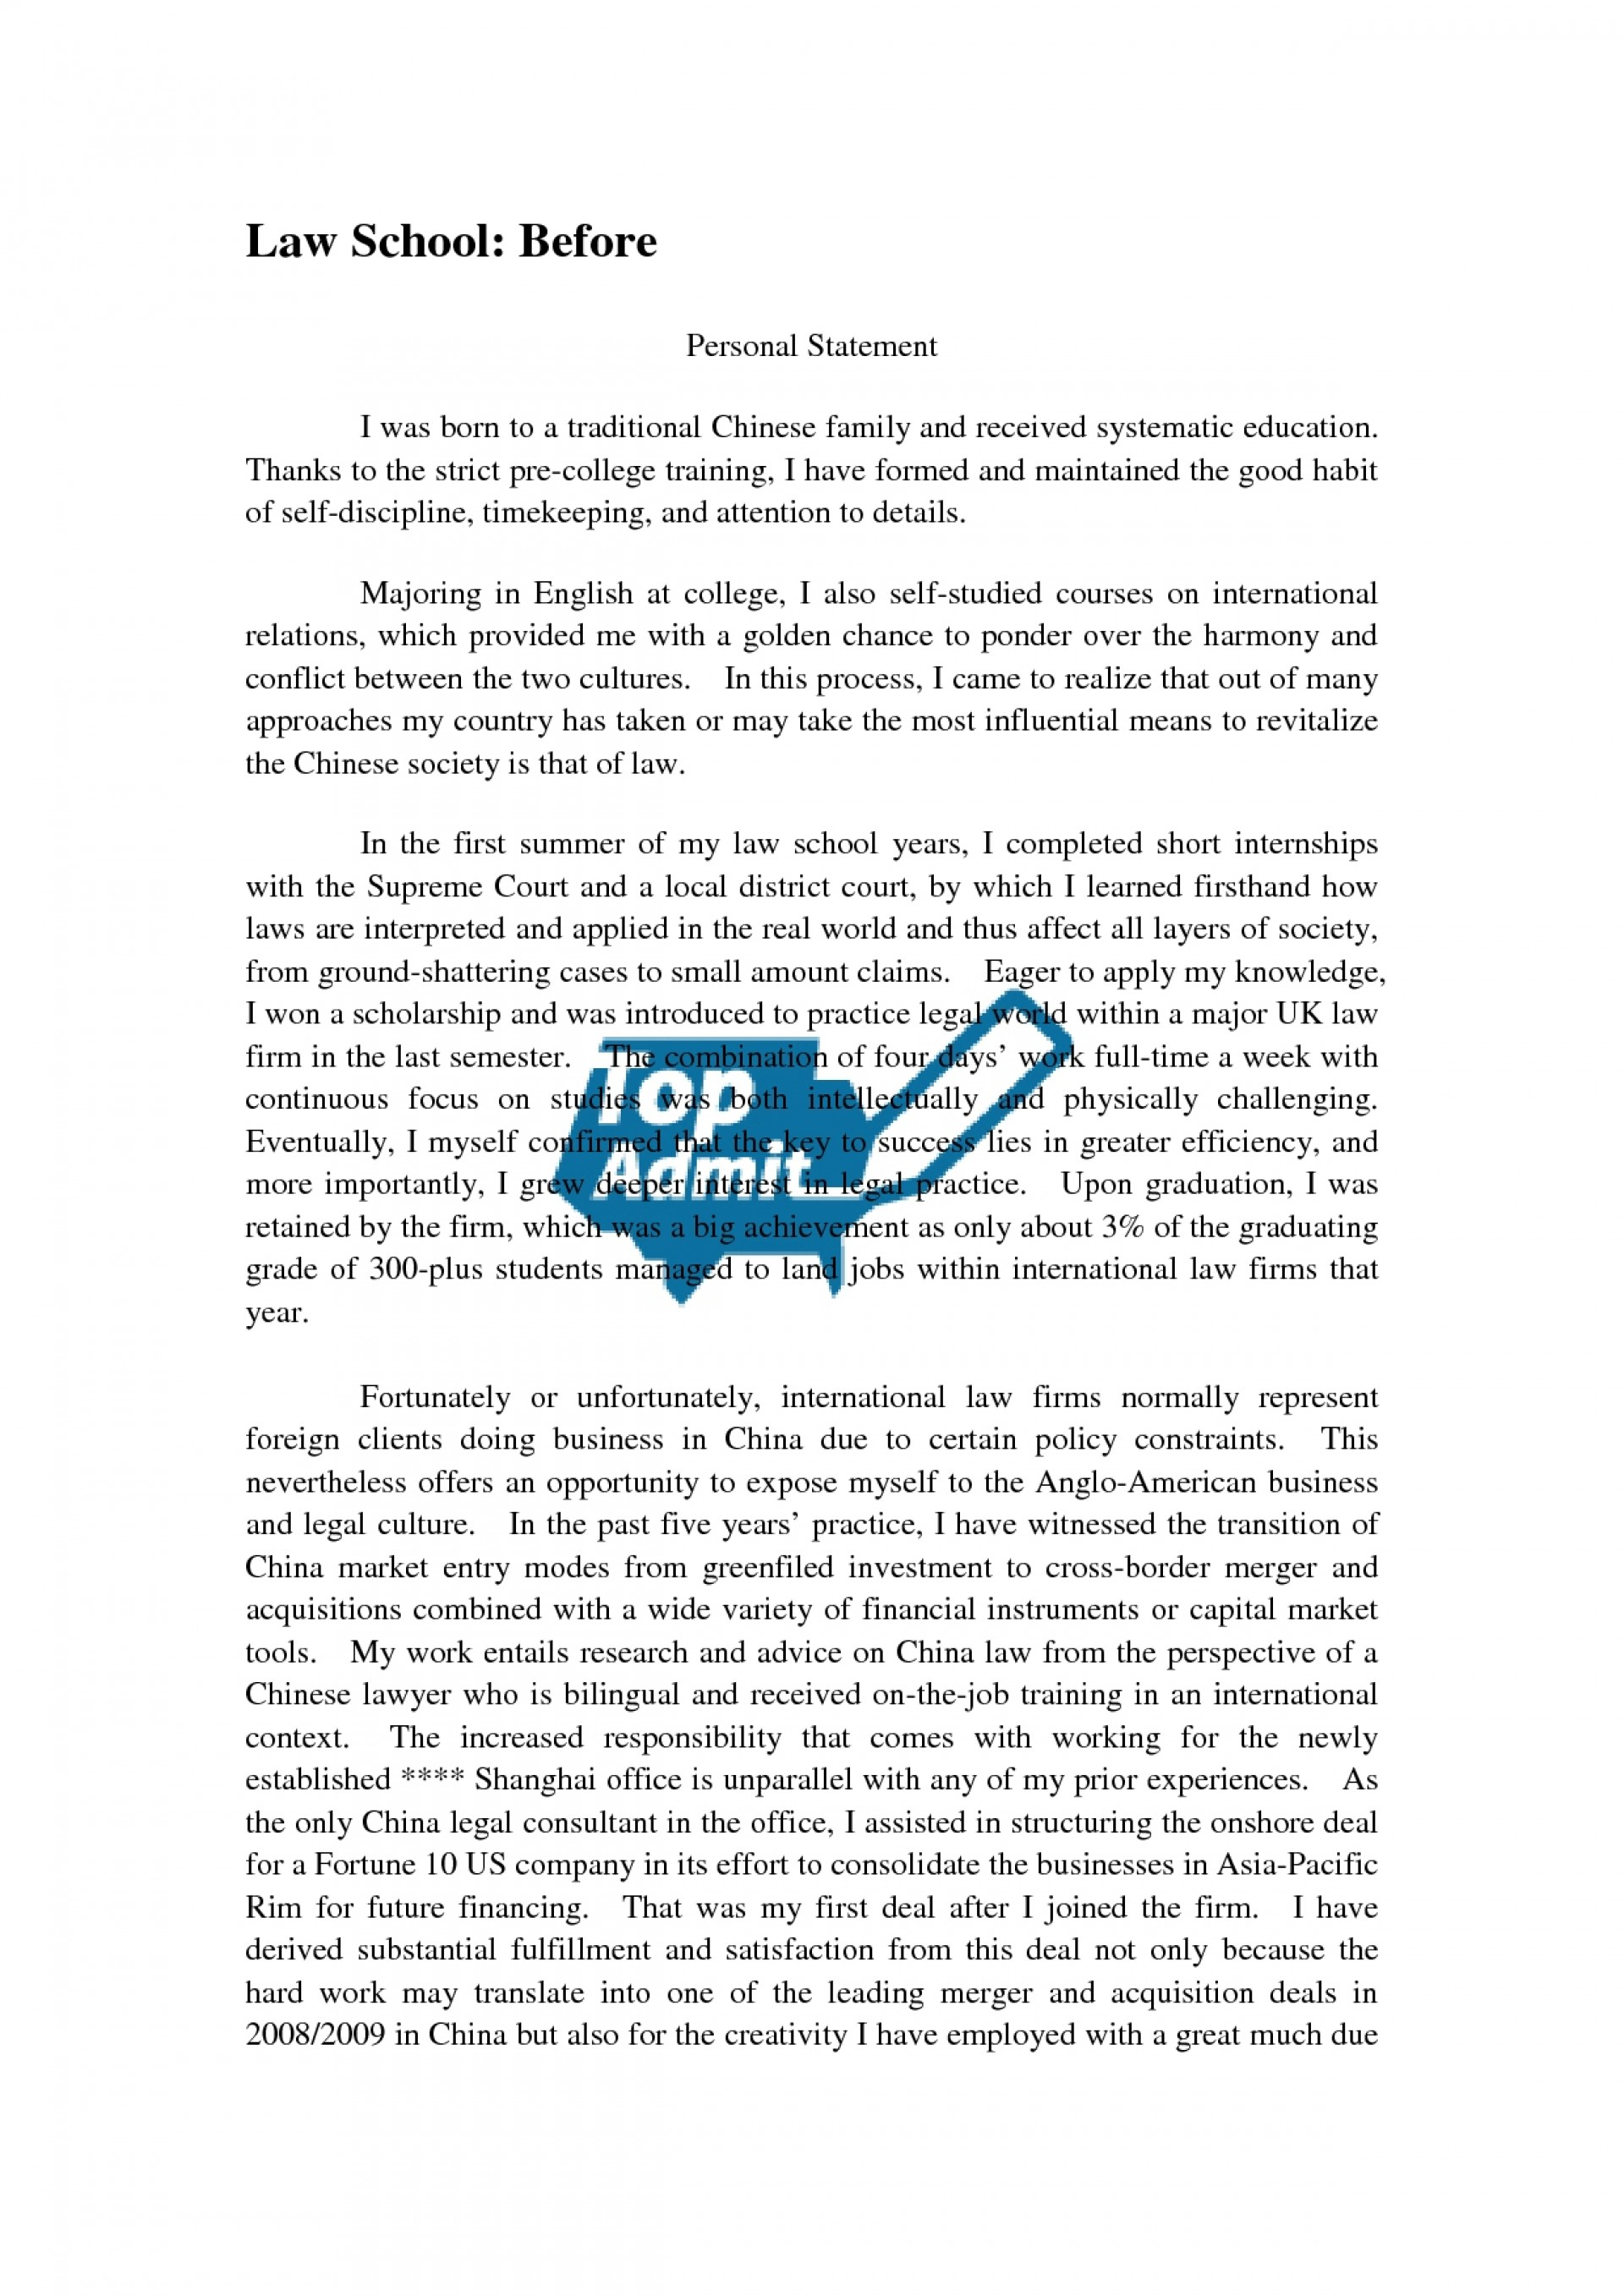 010 Purpose Of An Essay Ty6thpg Striking Example Expository Outline For Argumentative 1920